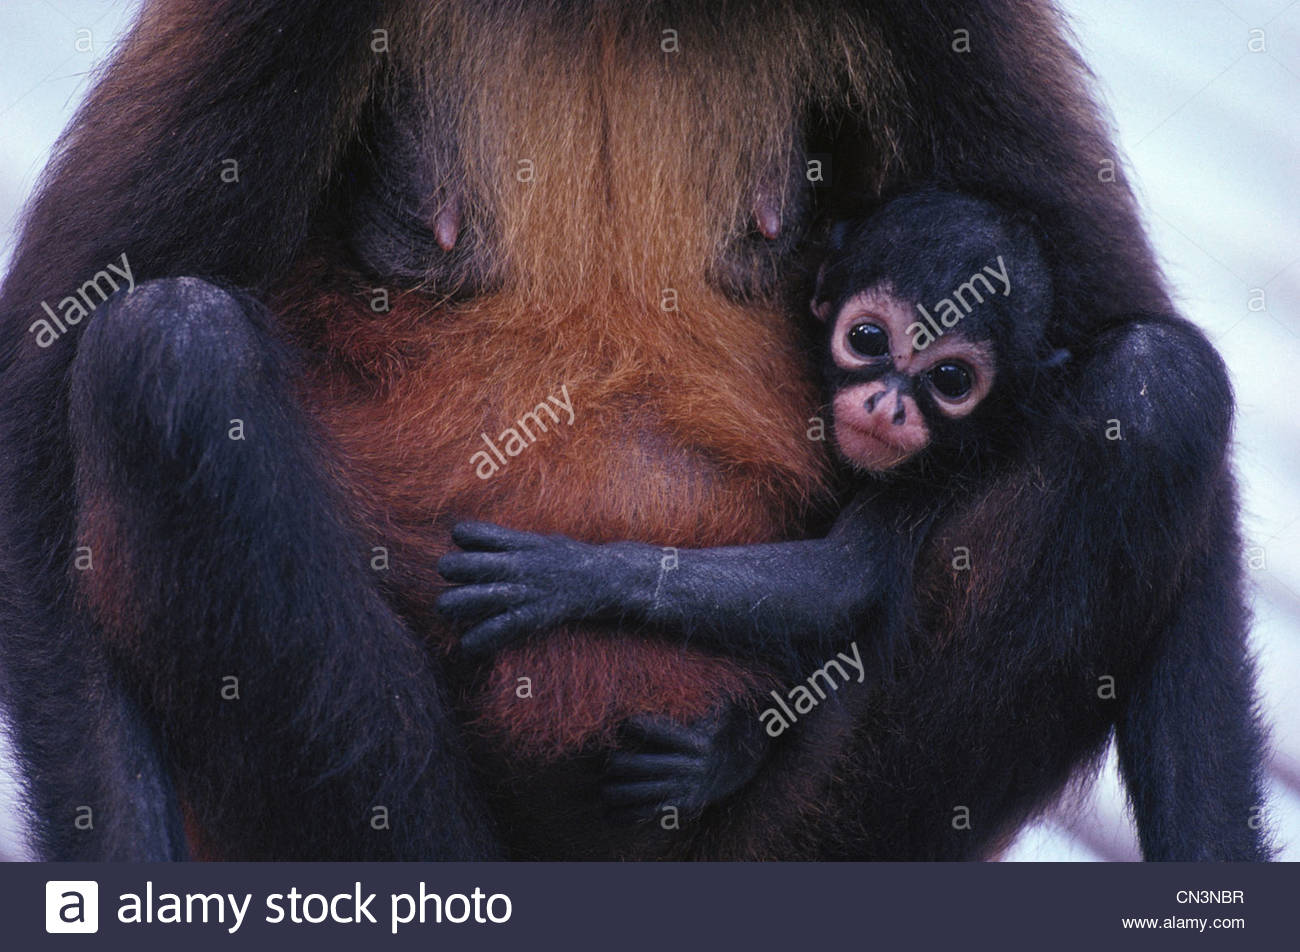 Black-handed spider monkey and baby, Panama - Stock Image